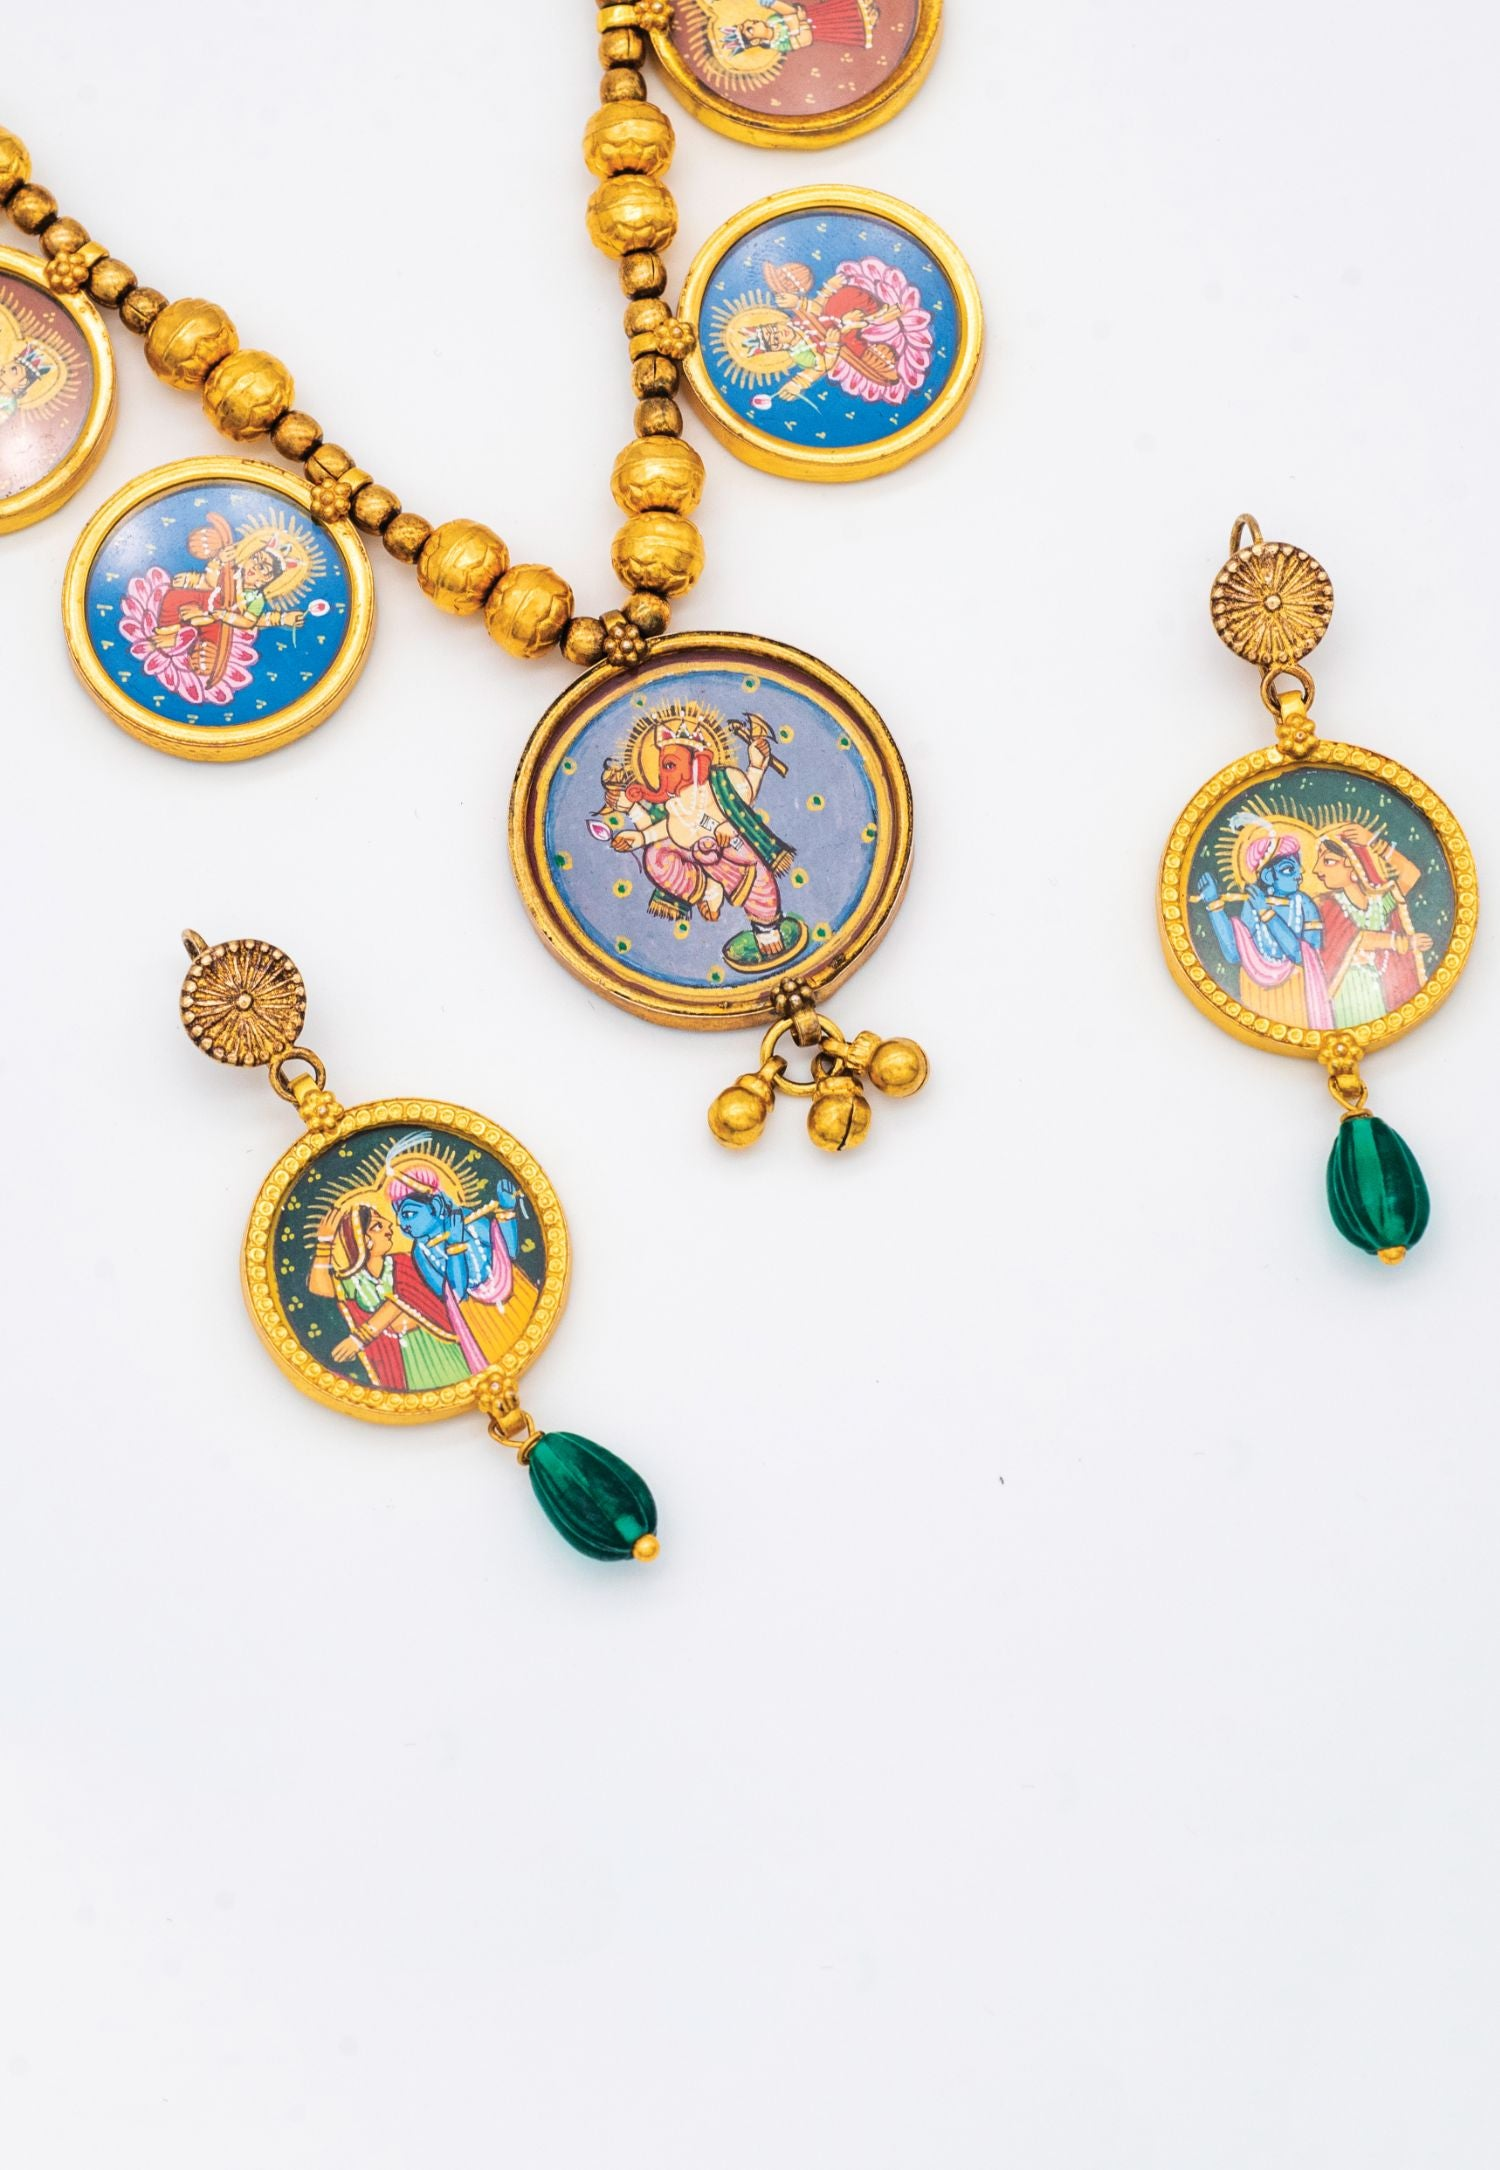 AMRAPALI GOLD SET FEATURING RADHA AND KRISHNA